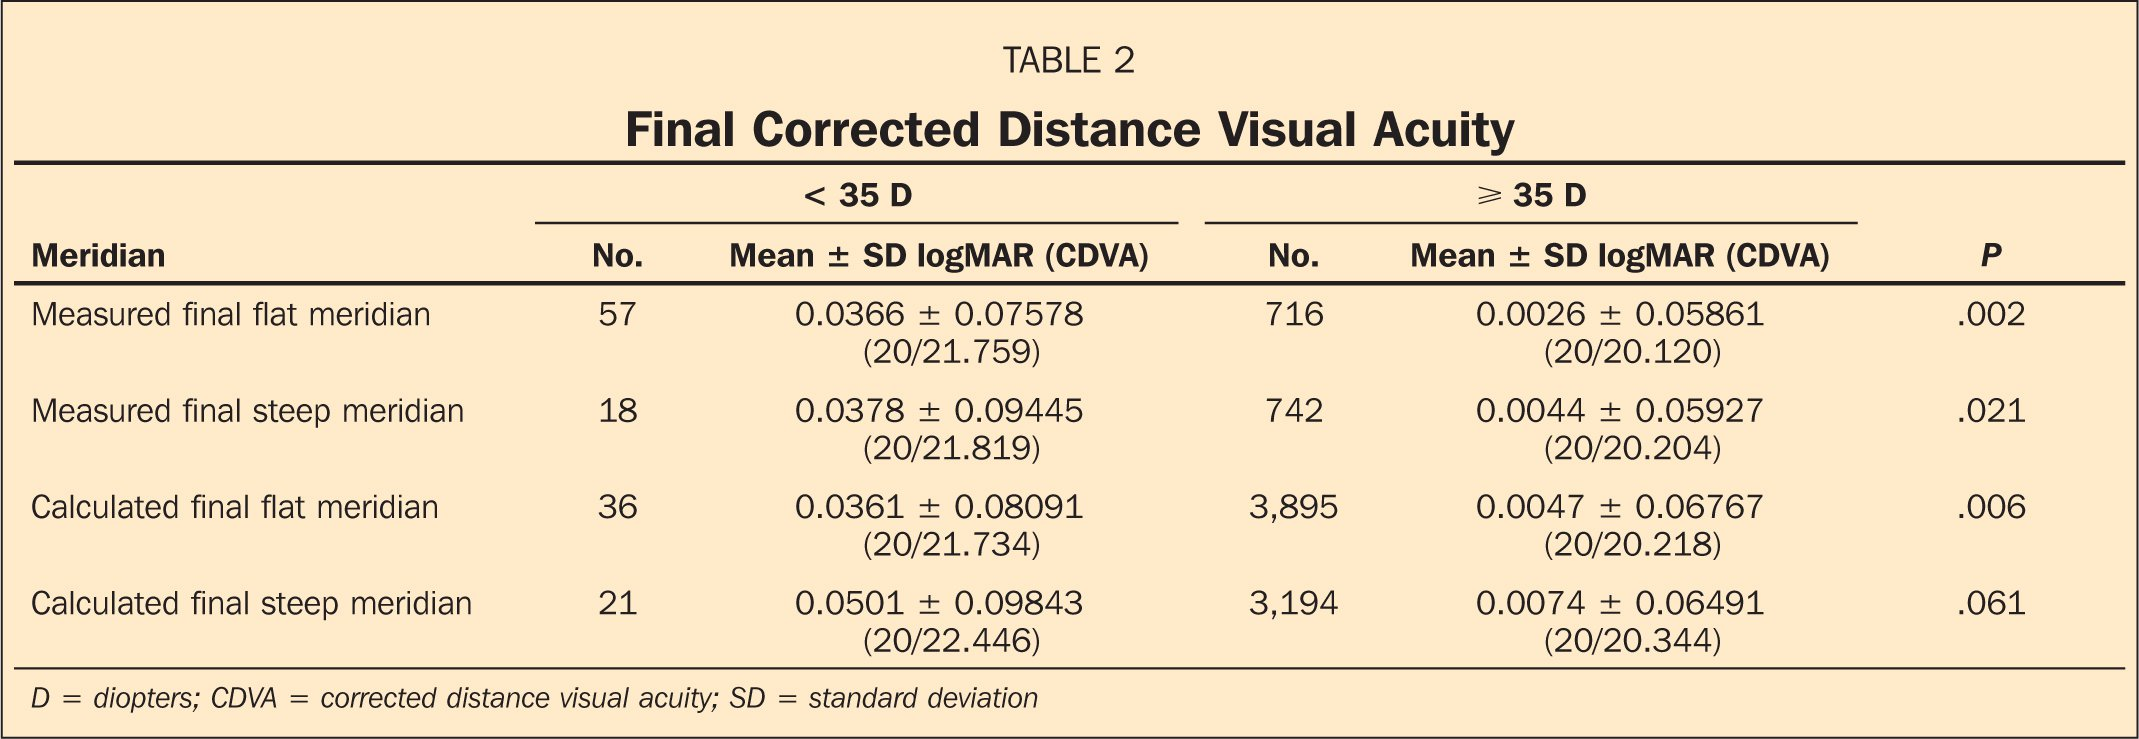 Final Corrected Distance Visual Acuity